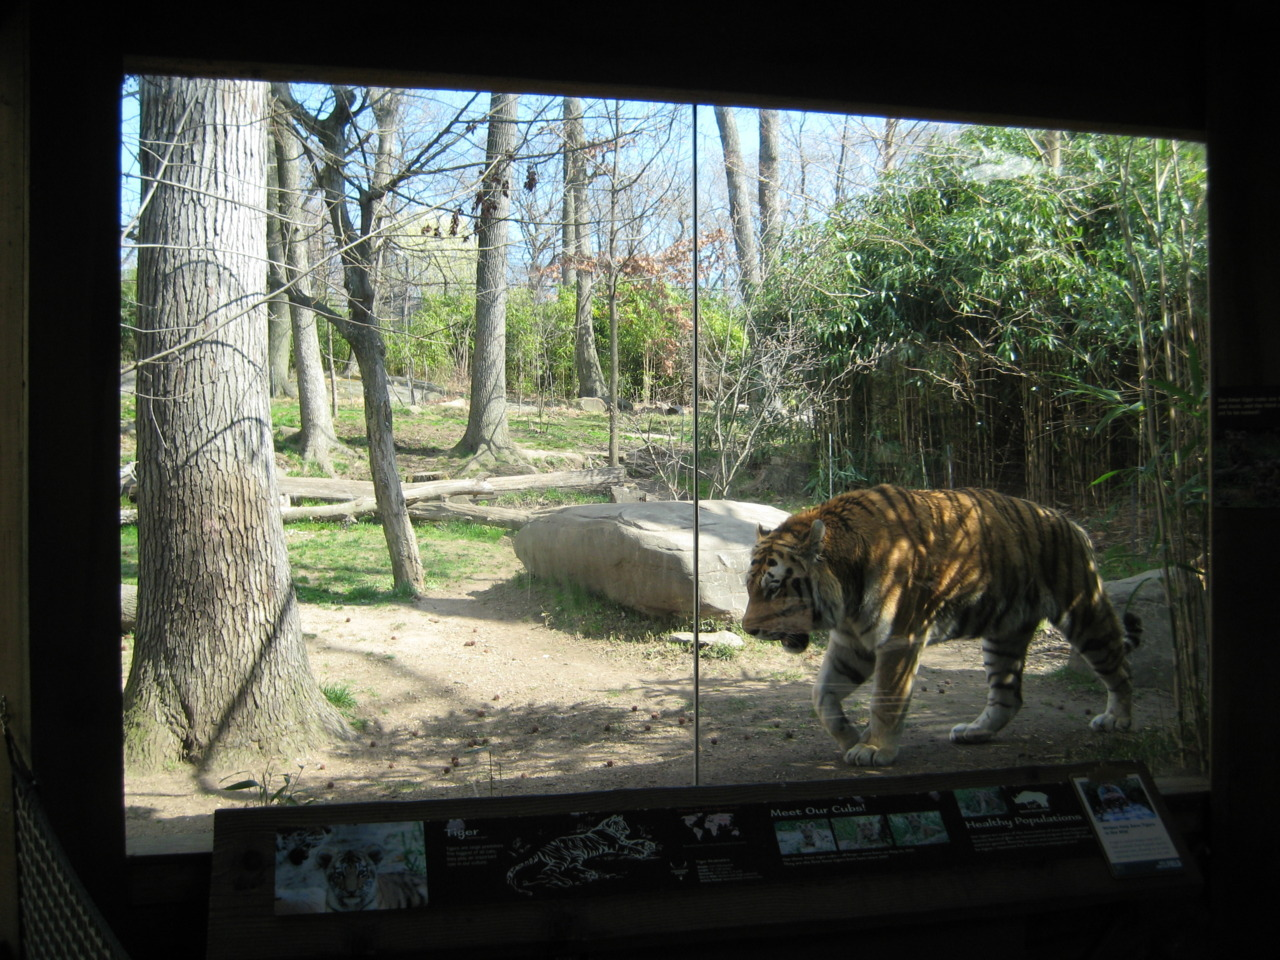 Tiger at Bronx Zoo.